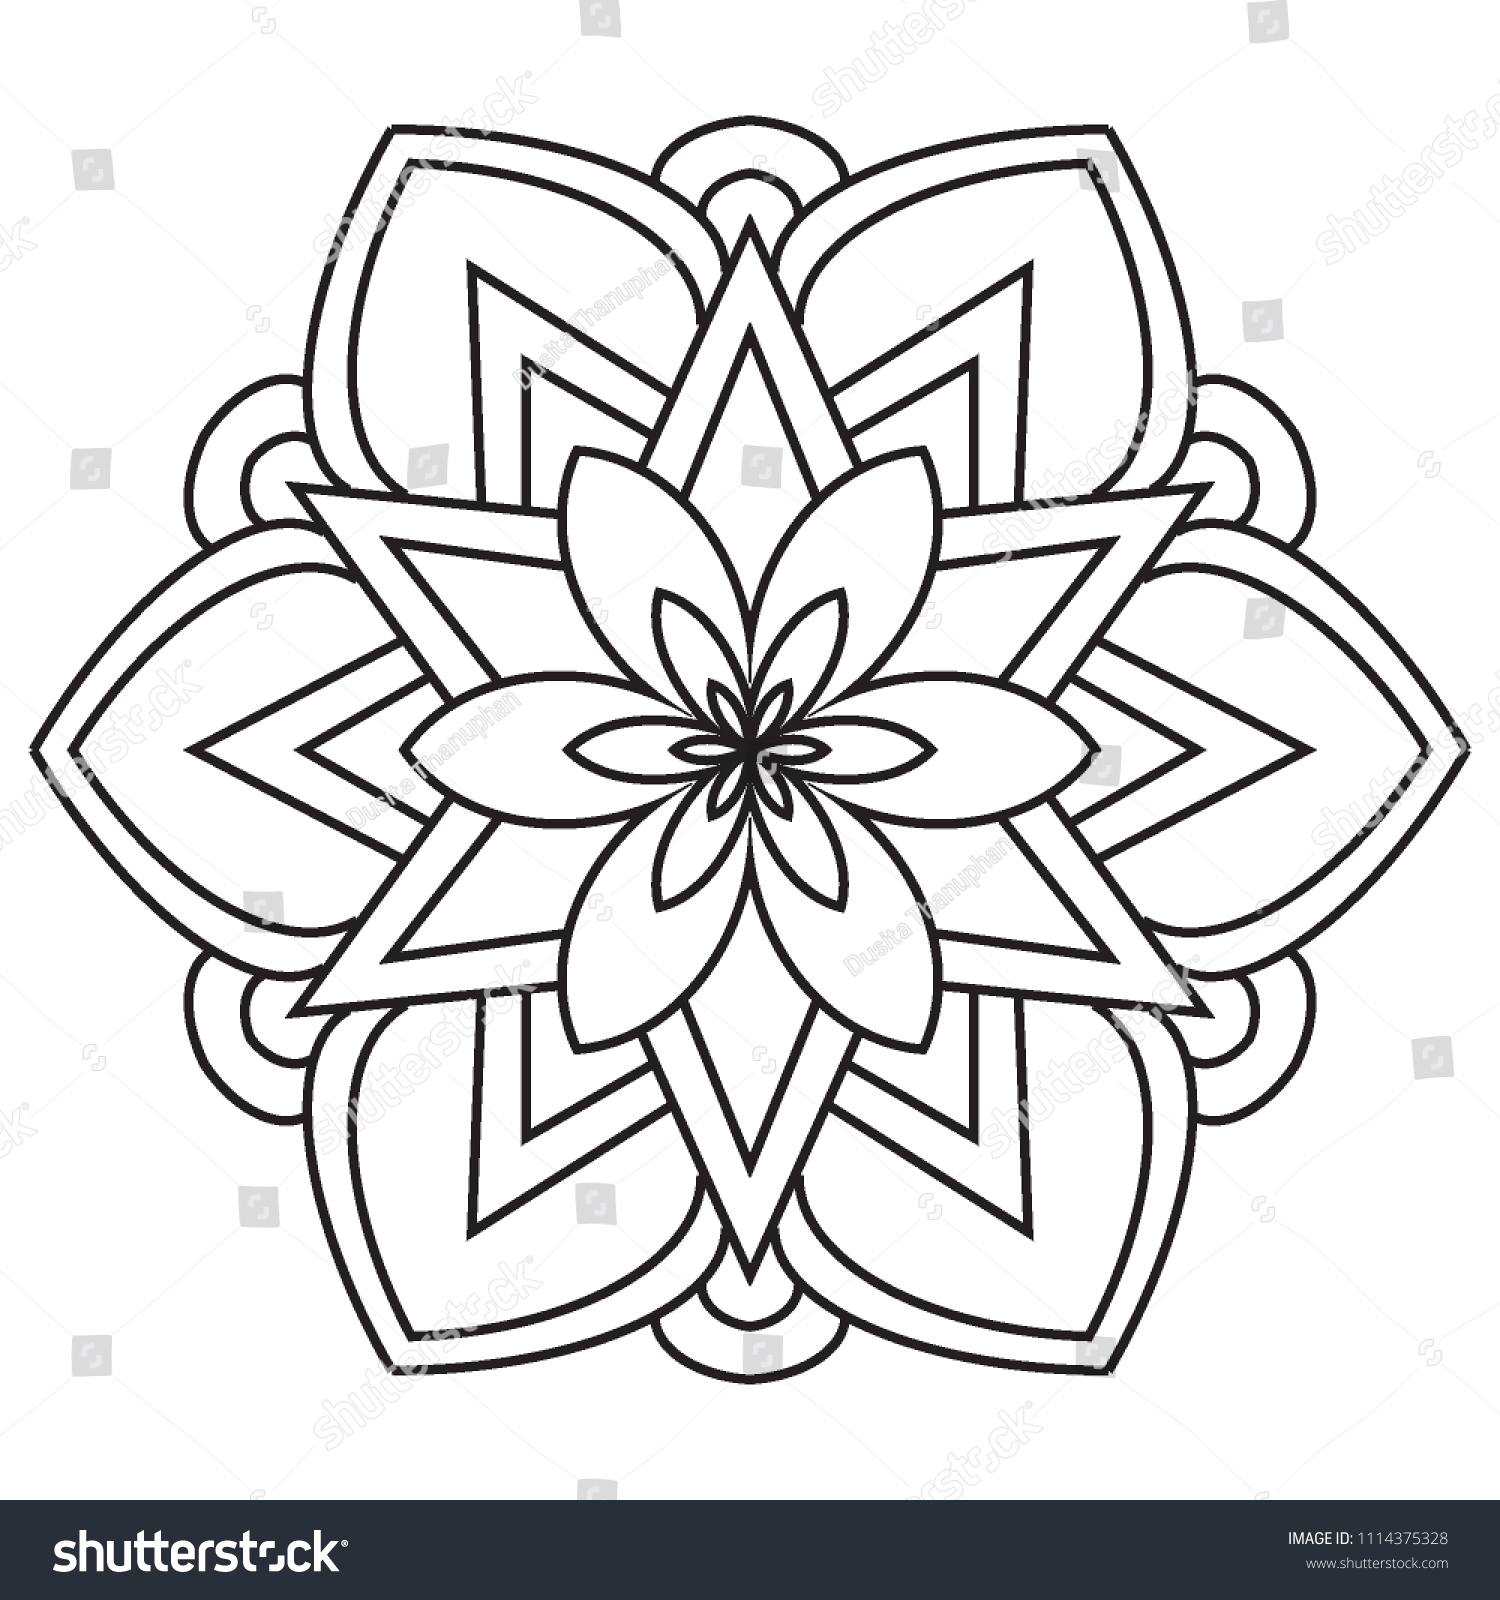 Basic Easy Simple Mandalas Coloring Pages Stock Illustration ...